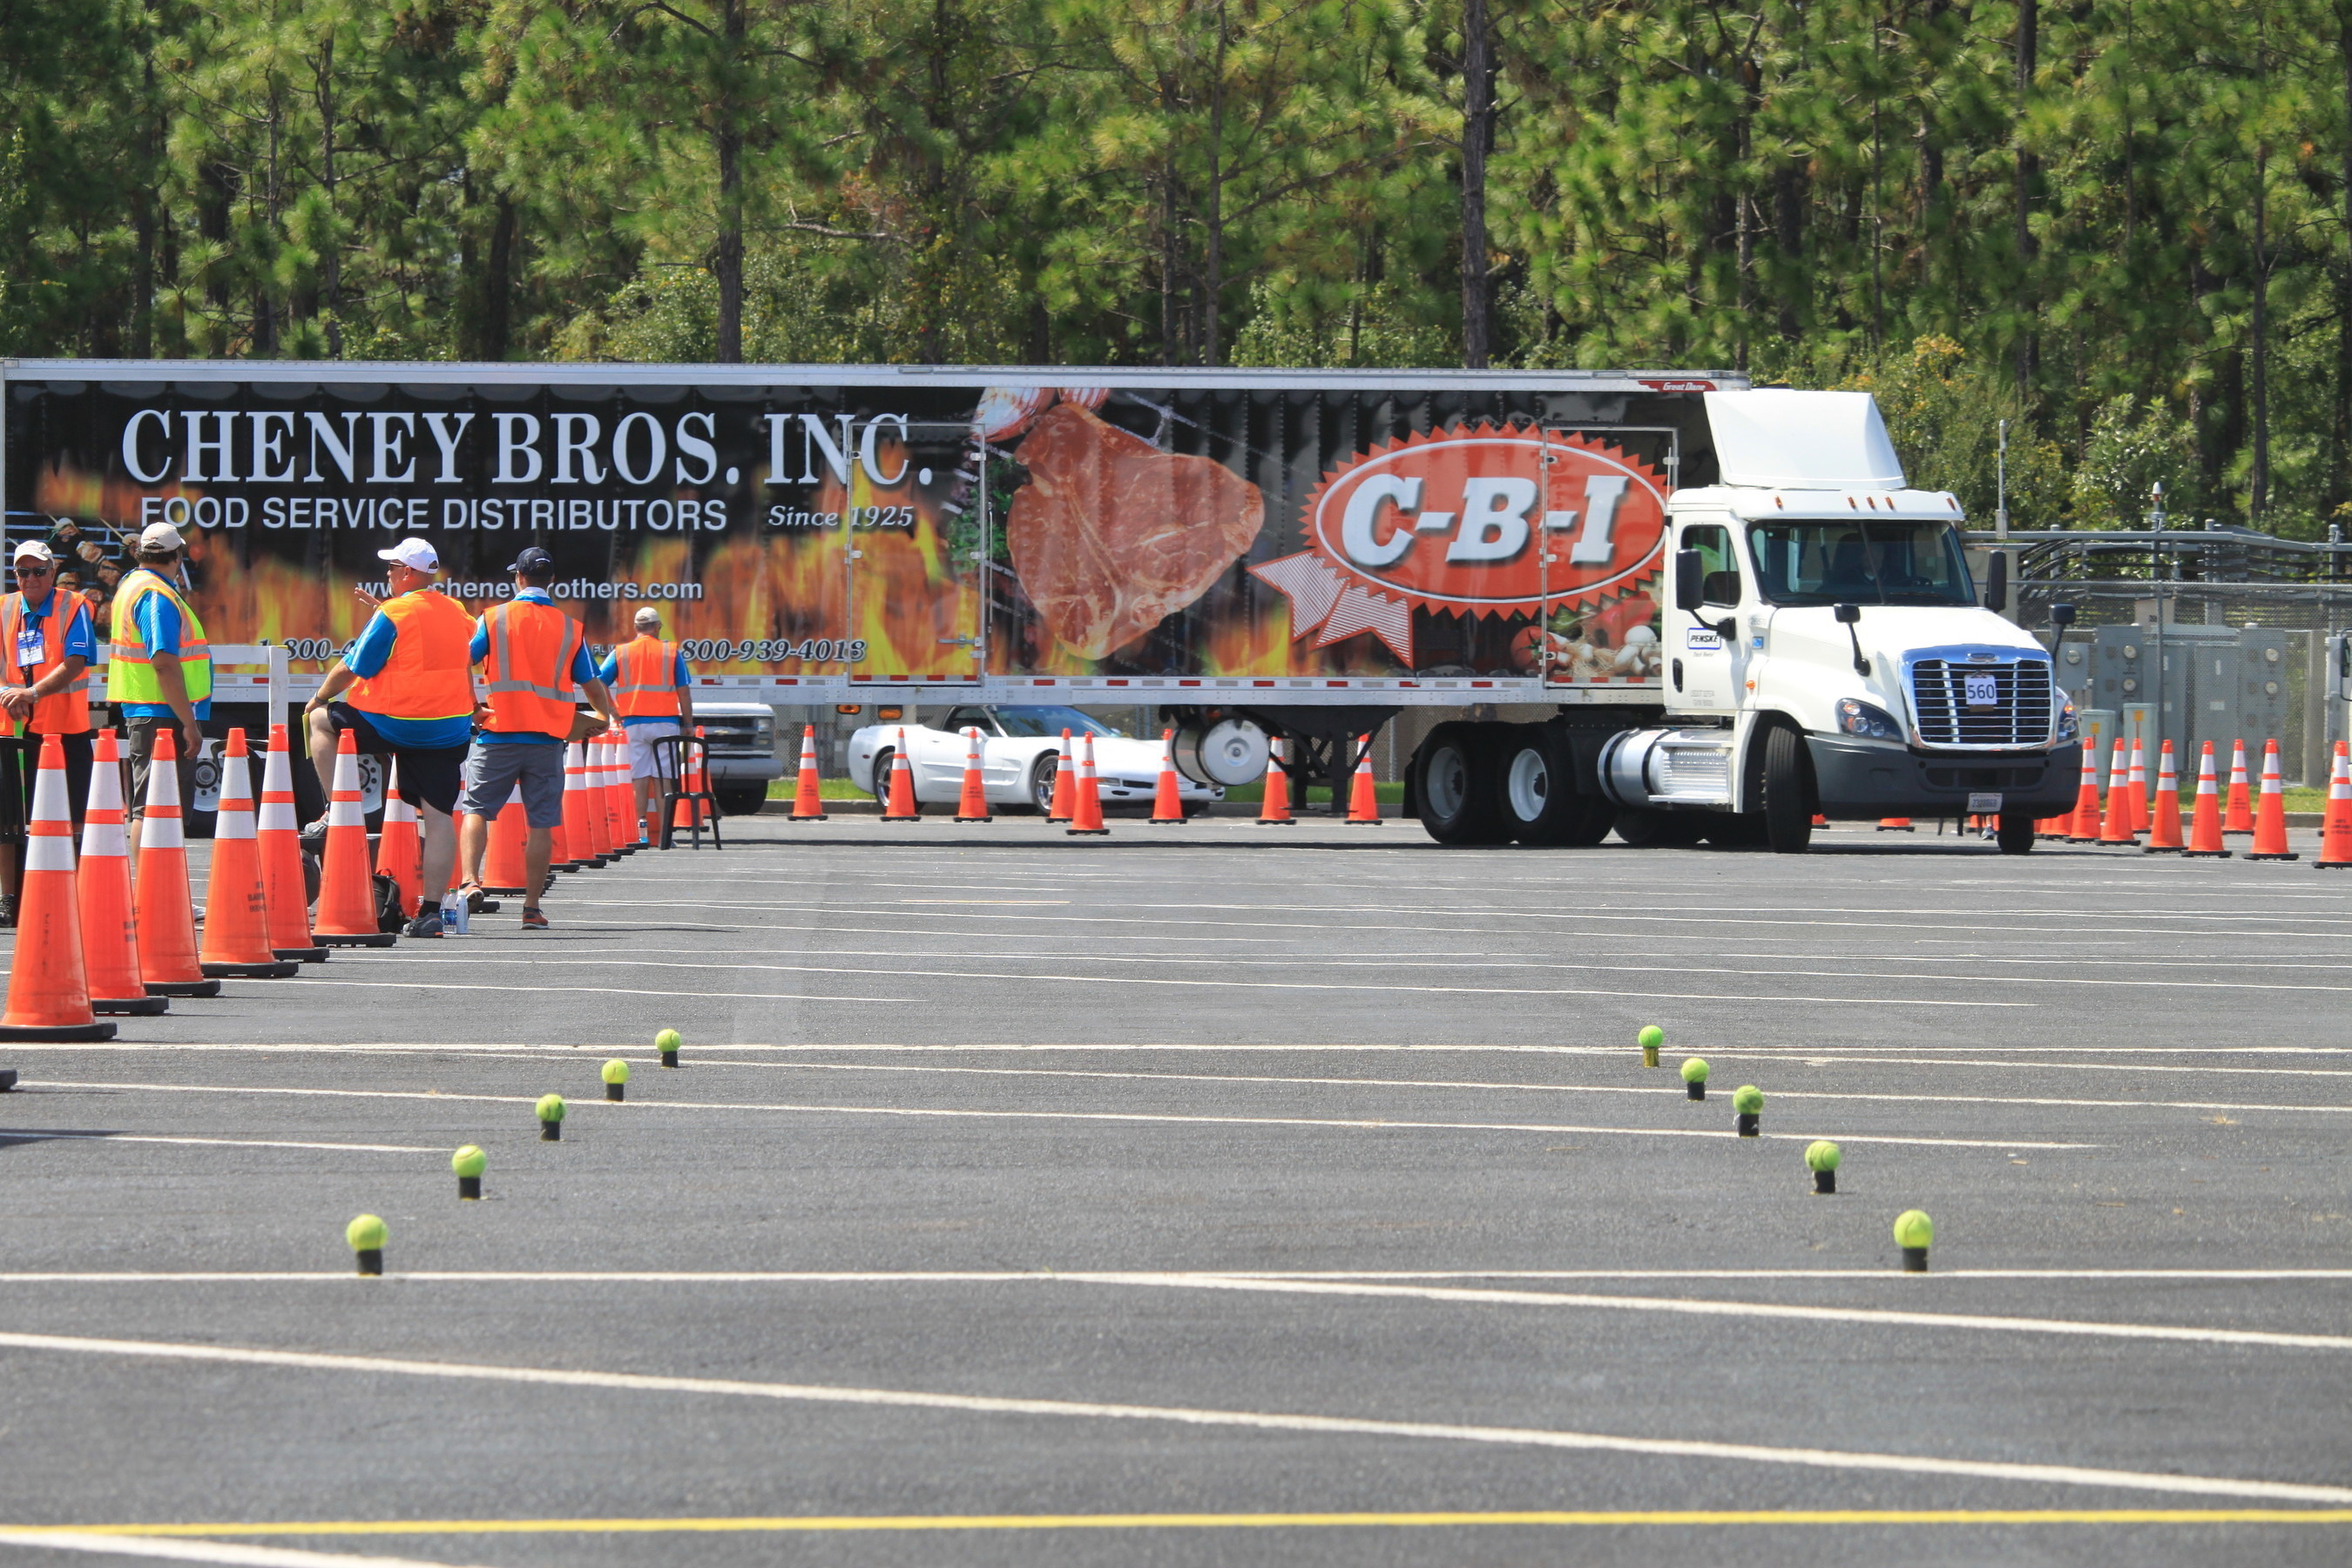 """In the U.S., foodservice distributors deliver about 25 million cases of food and other products each day to restaurants and other professional kitchens. During the IFDA Truck Driving Championship (above), a driver in the 48-foot tractor-trailer category takes on the """"right turn"""" challenge where a rear axle tire had to be within 18 inches of the cone to score."""